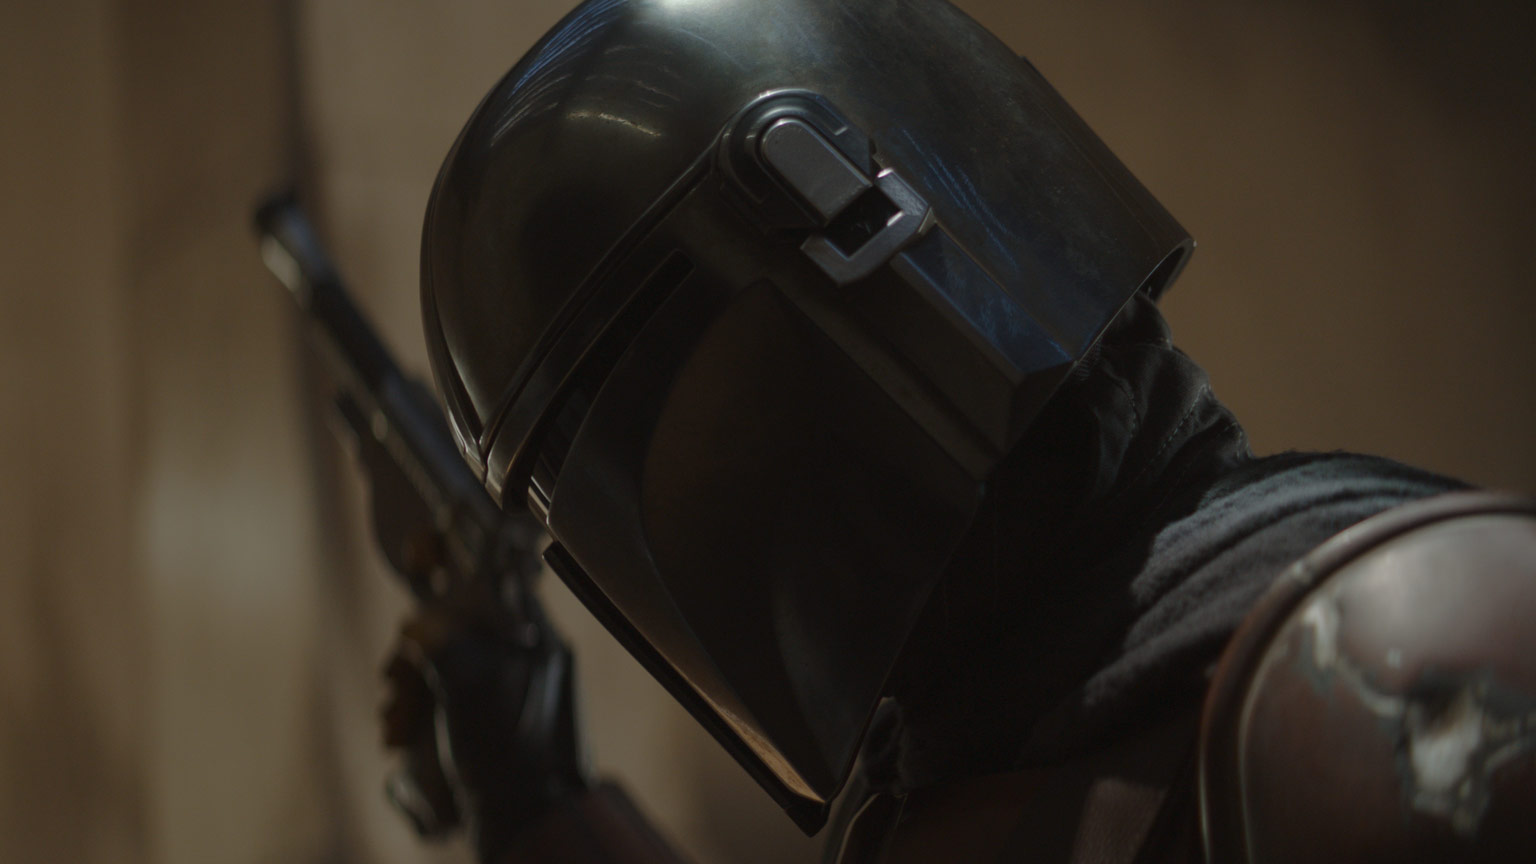 'The Mandalorian' season 3 may have secretly started filming already